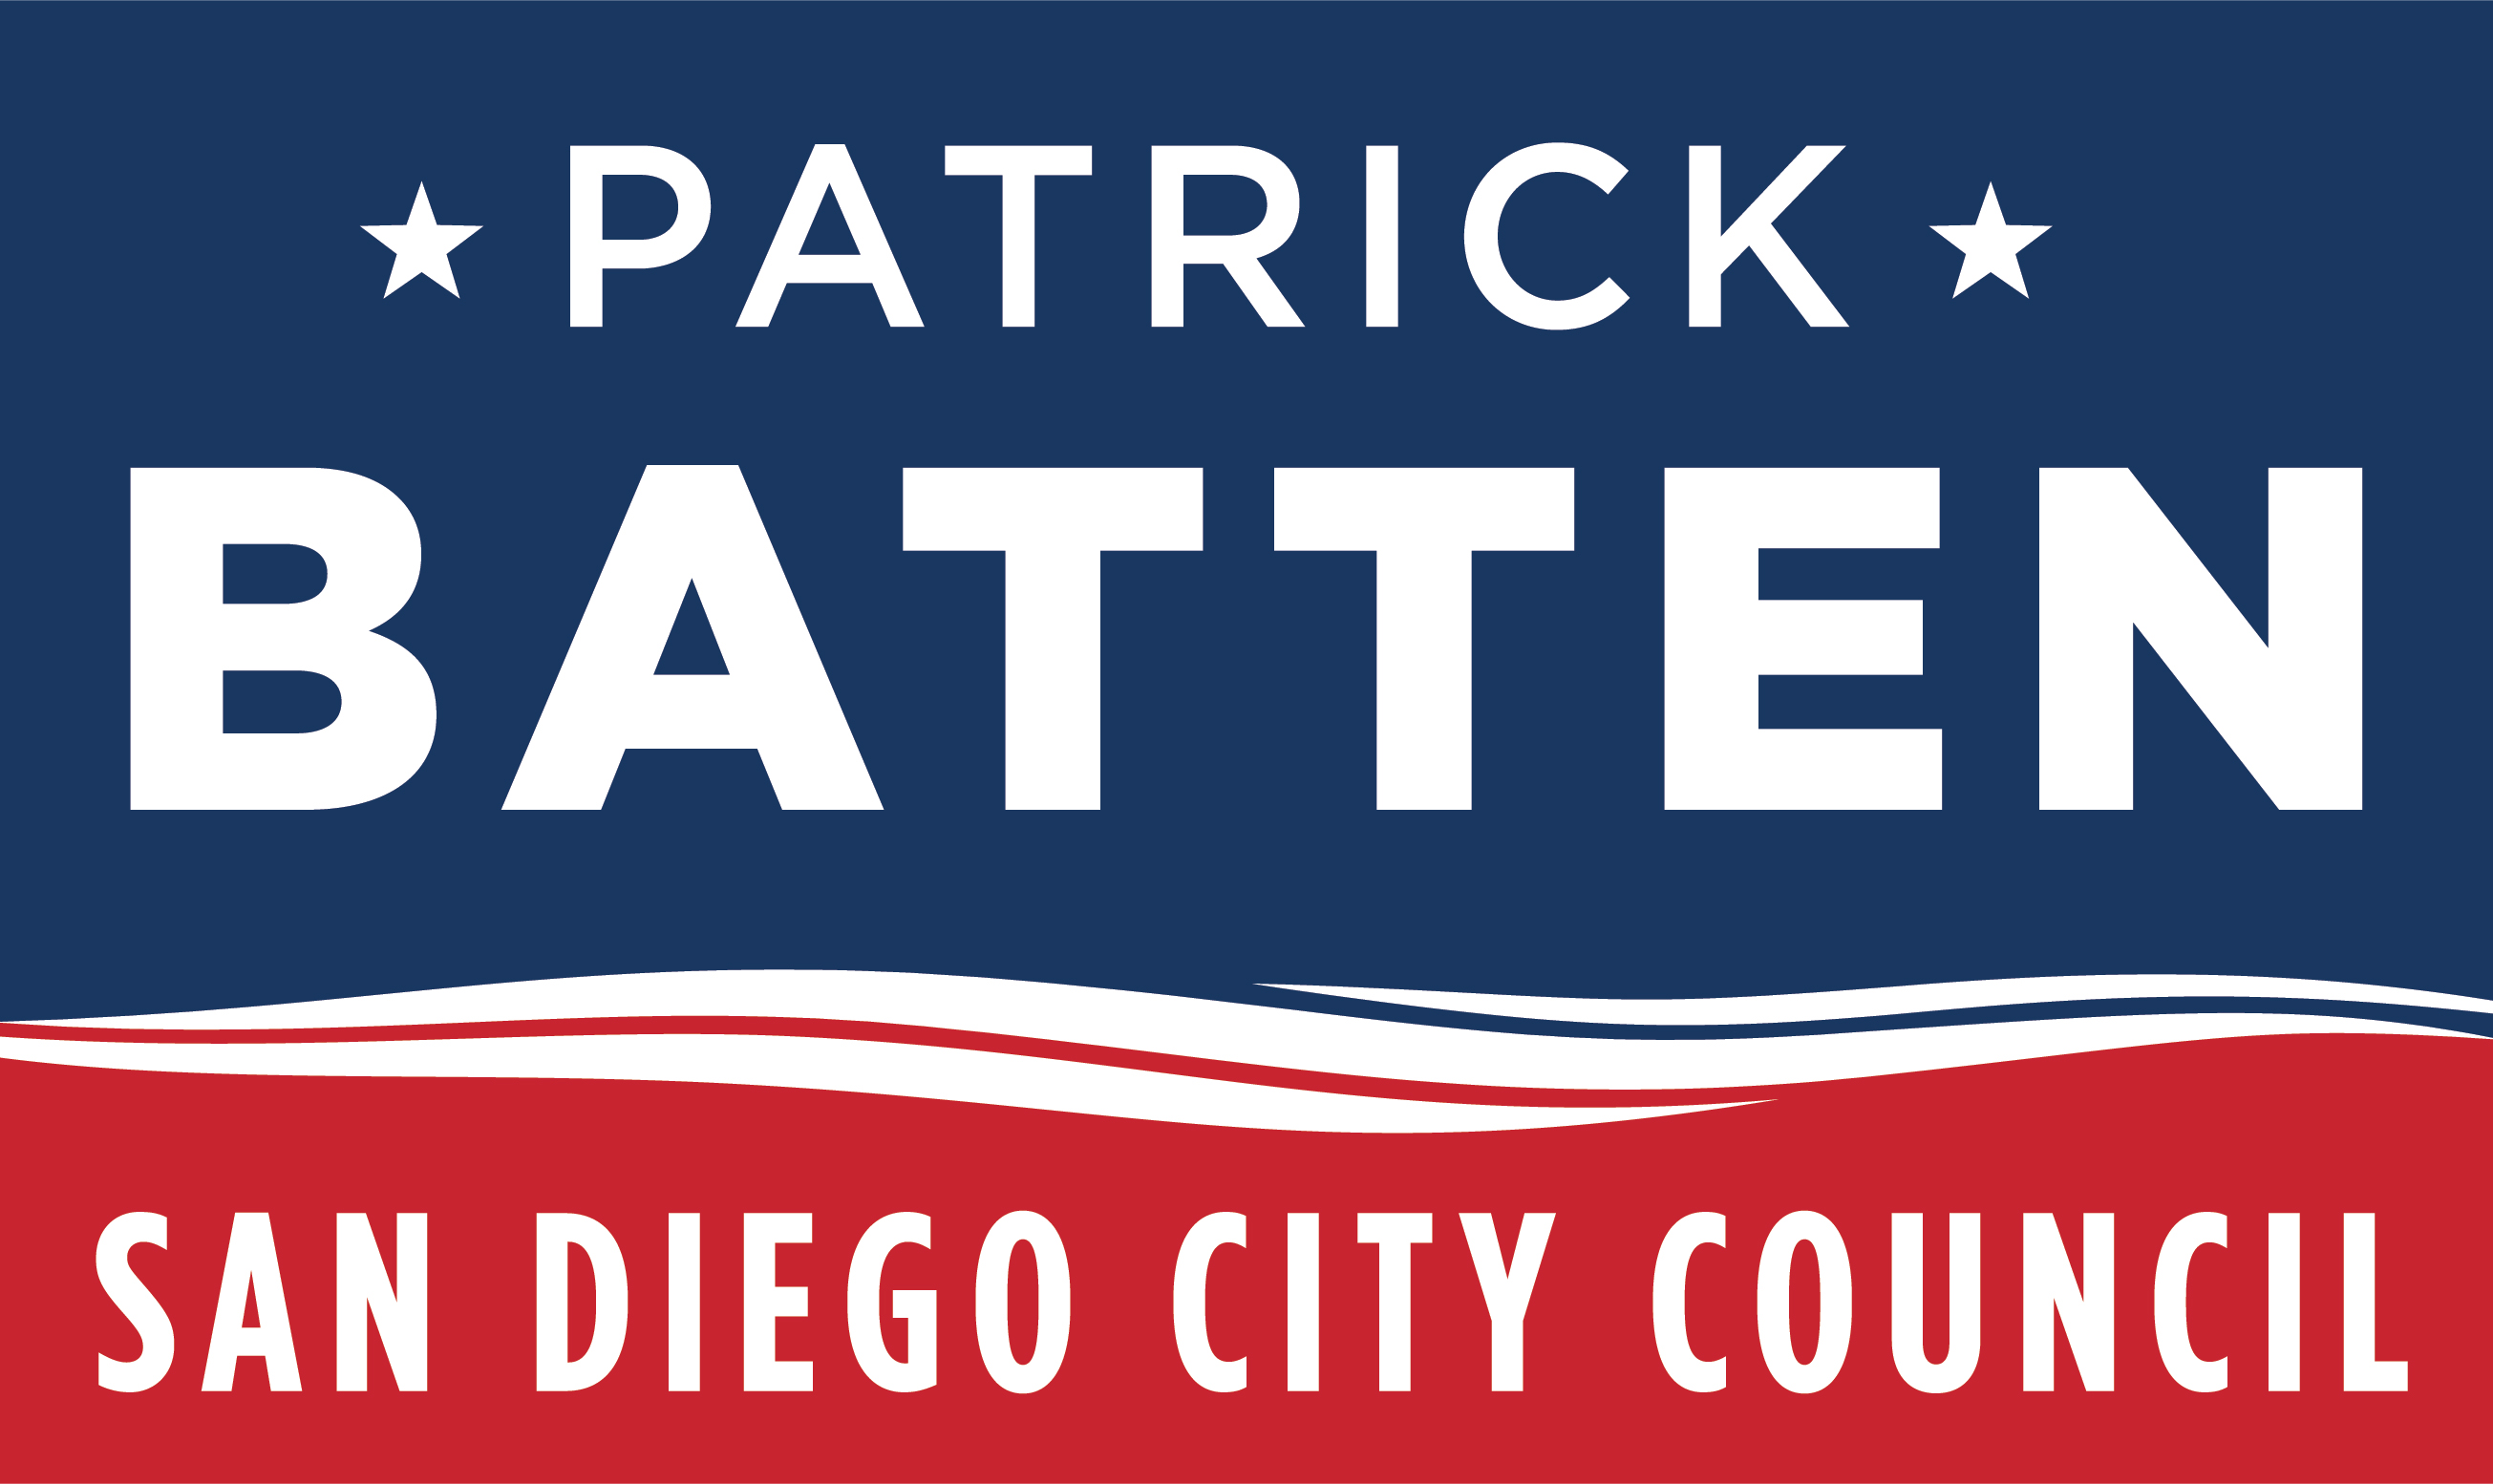 Patrick Batten for City Council